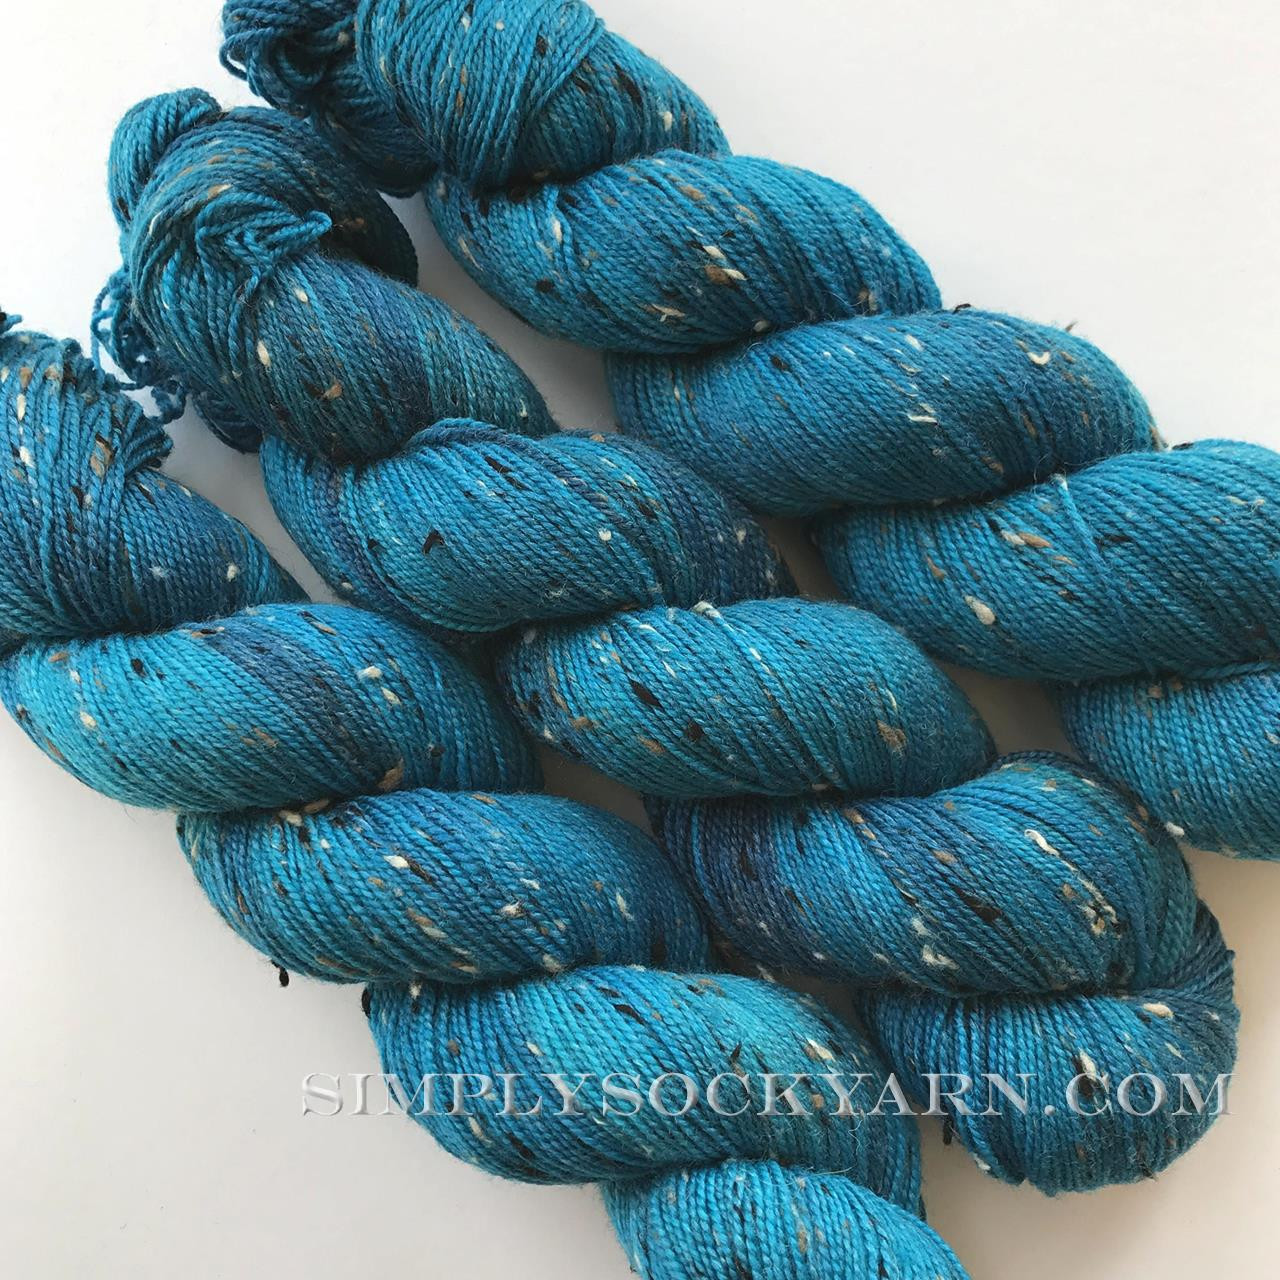 Qing Donegal Teal -